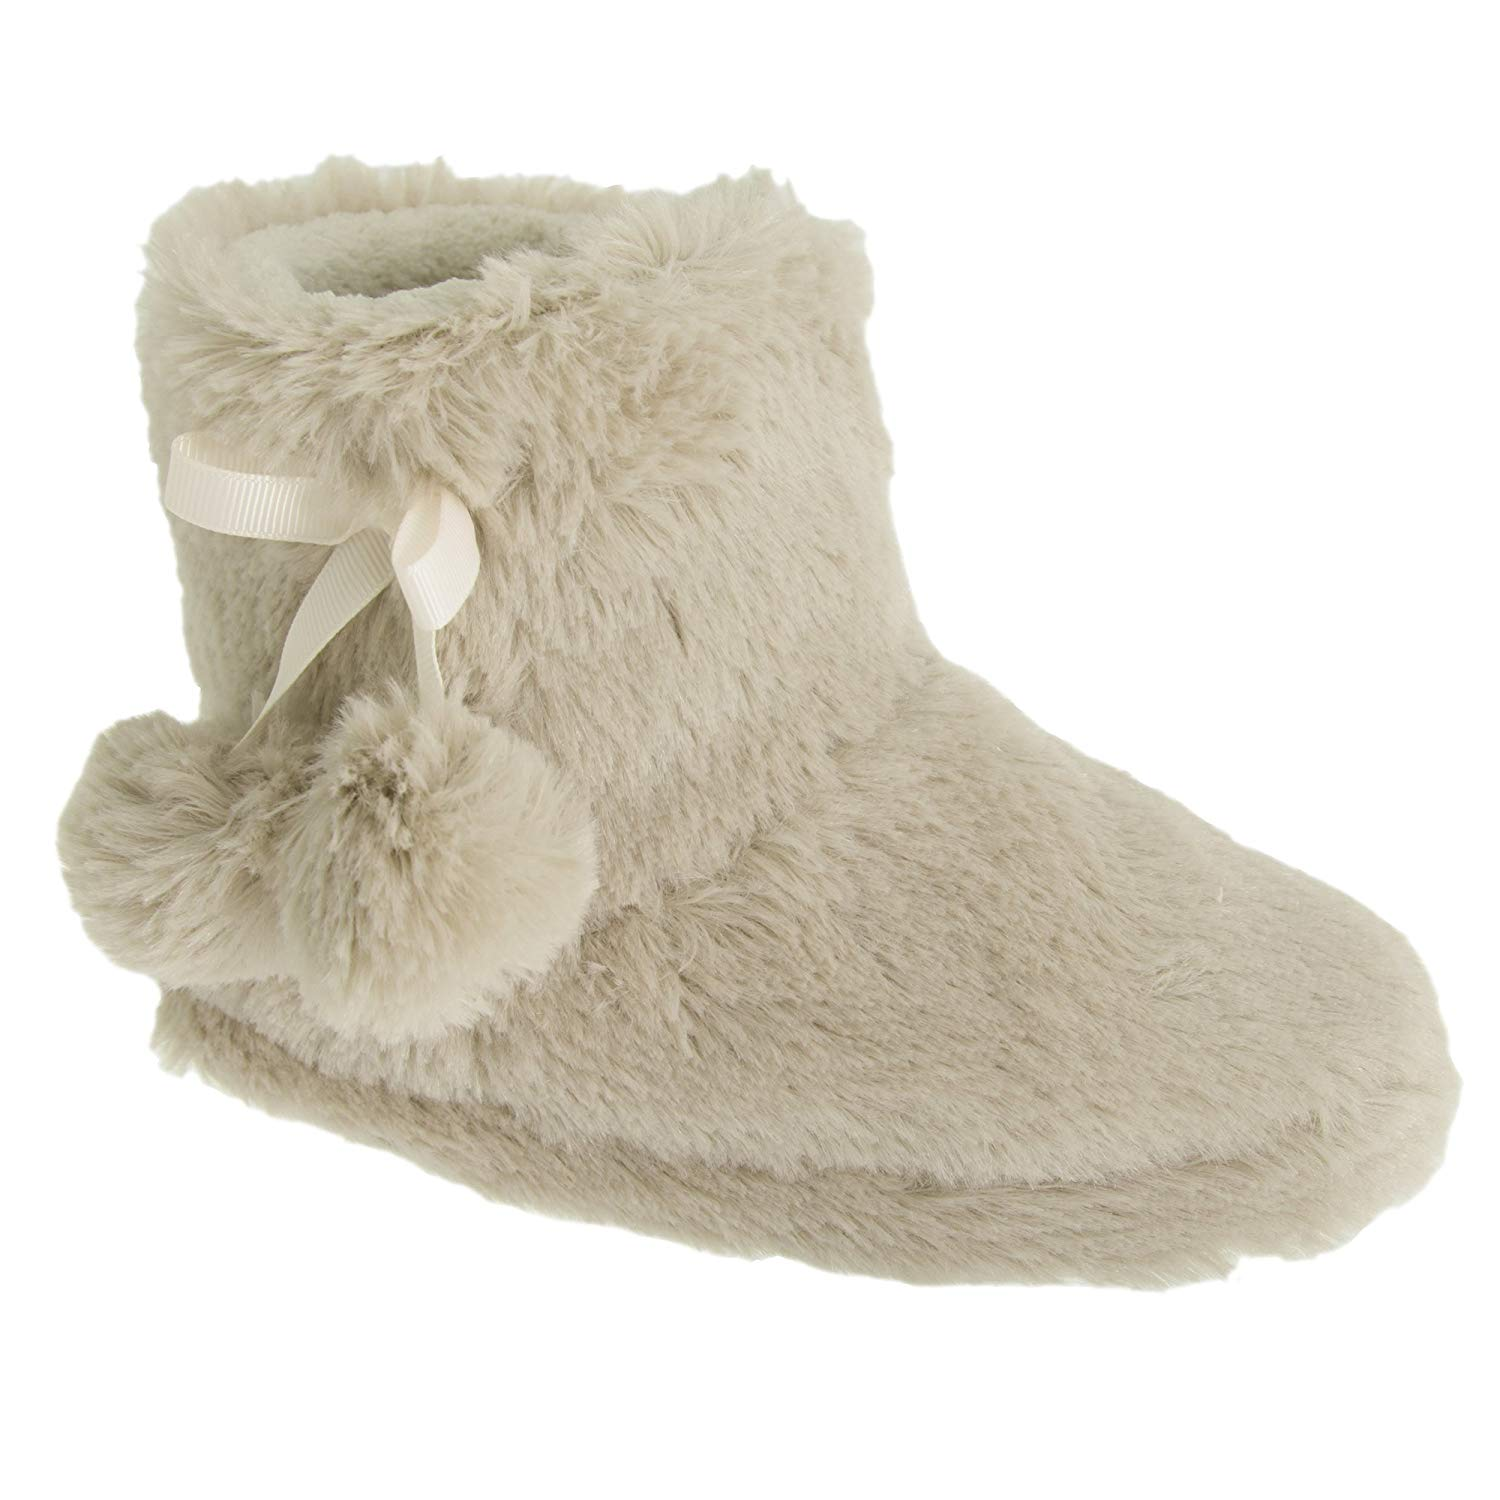 94ded027715 Get Quotations · Childrens Girls Plush Boot Slippers with Pom-Pom Detail